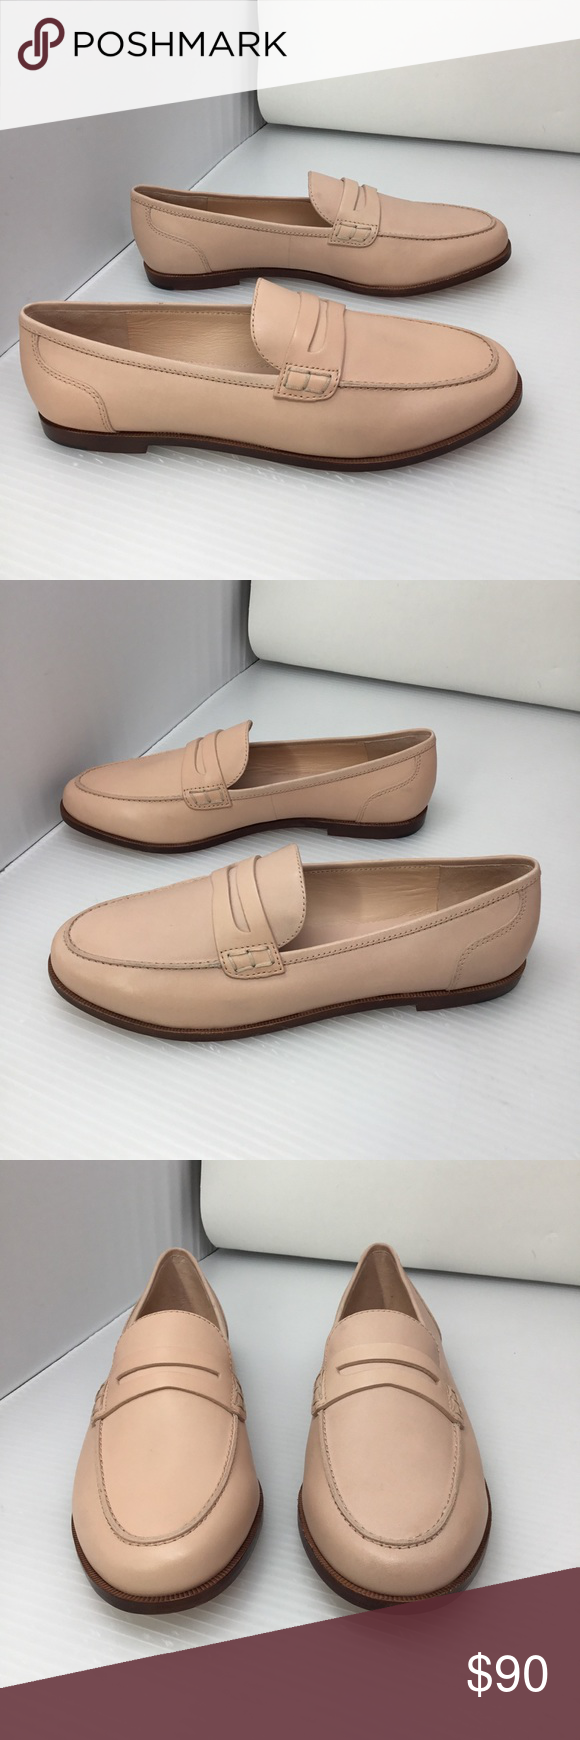 f96d7560739e7 J. Crew Ryan Penny Loafer A new take on the classic prep school-inspired